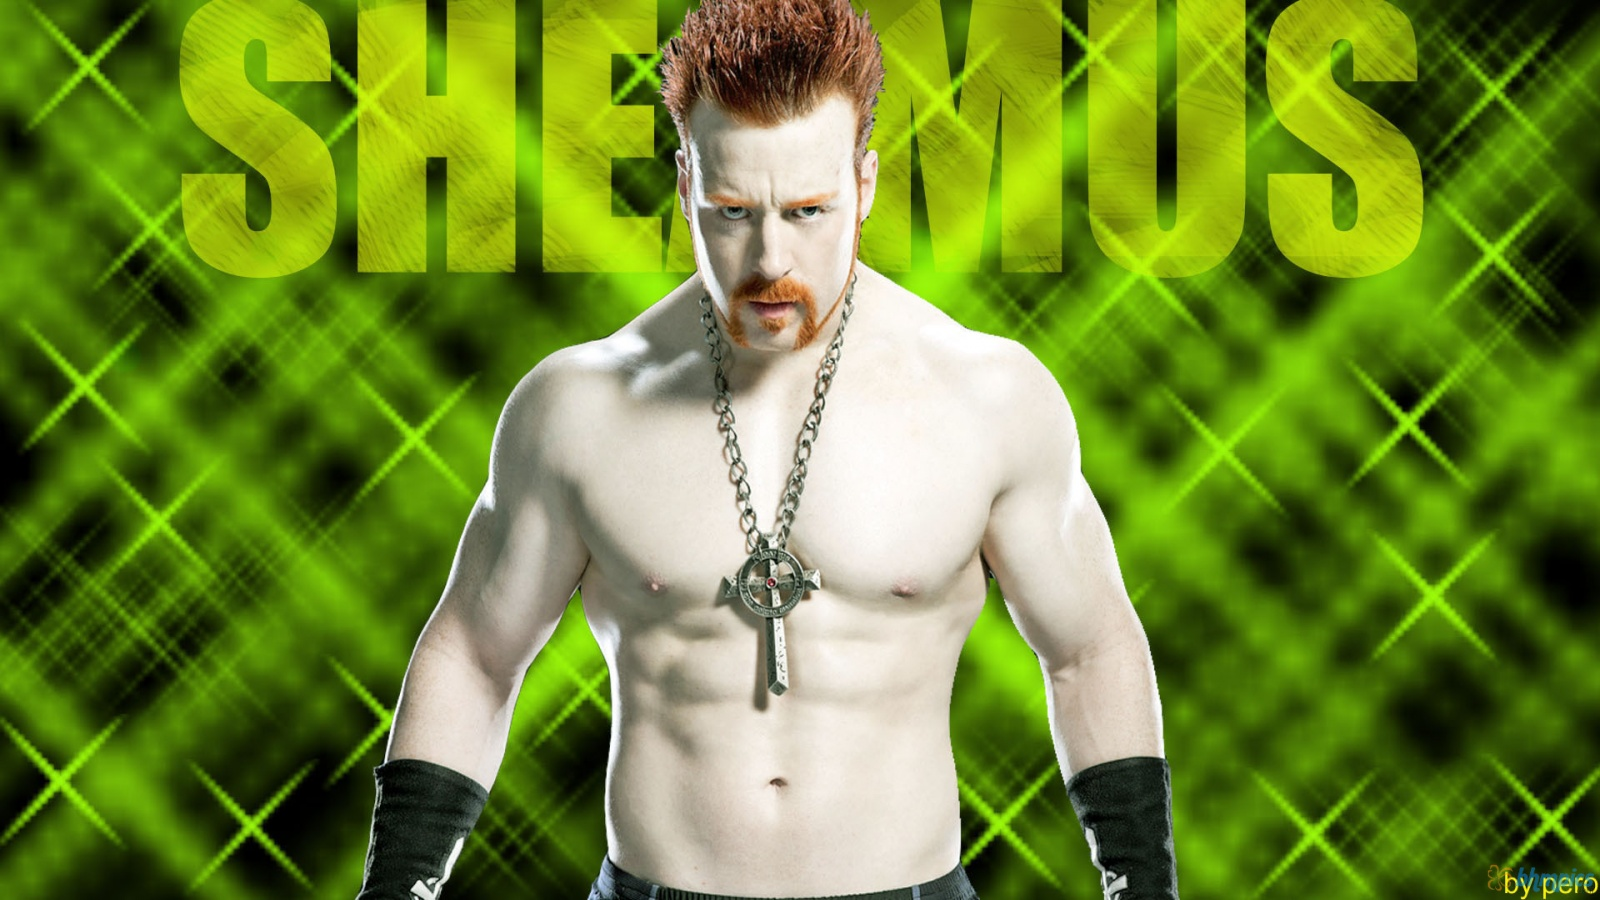 http://kocosports.net/wp-content/uploads/wallpapers/sheamus_wrestler-1600x900.jpg